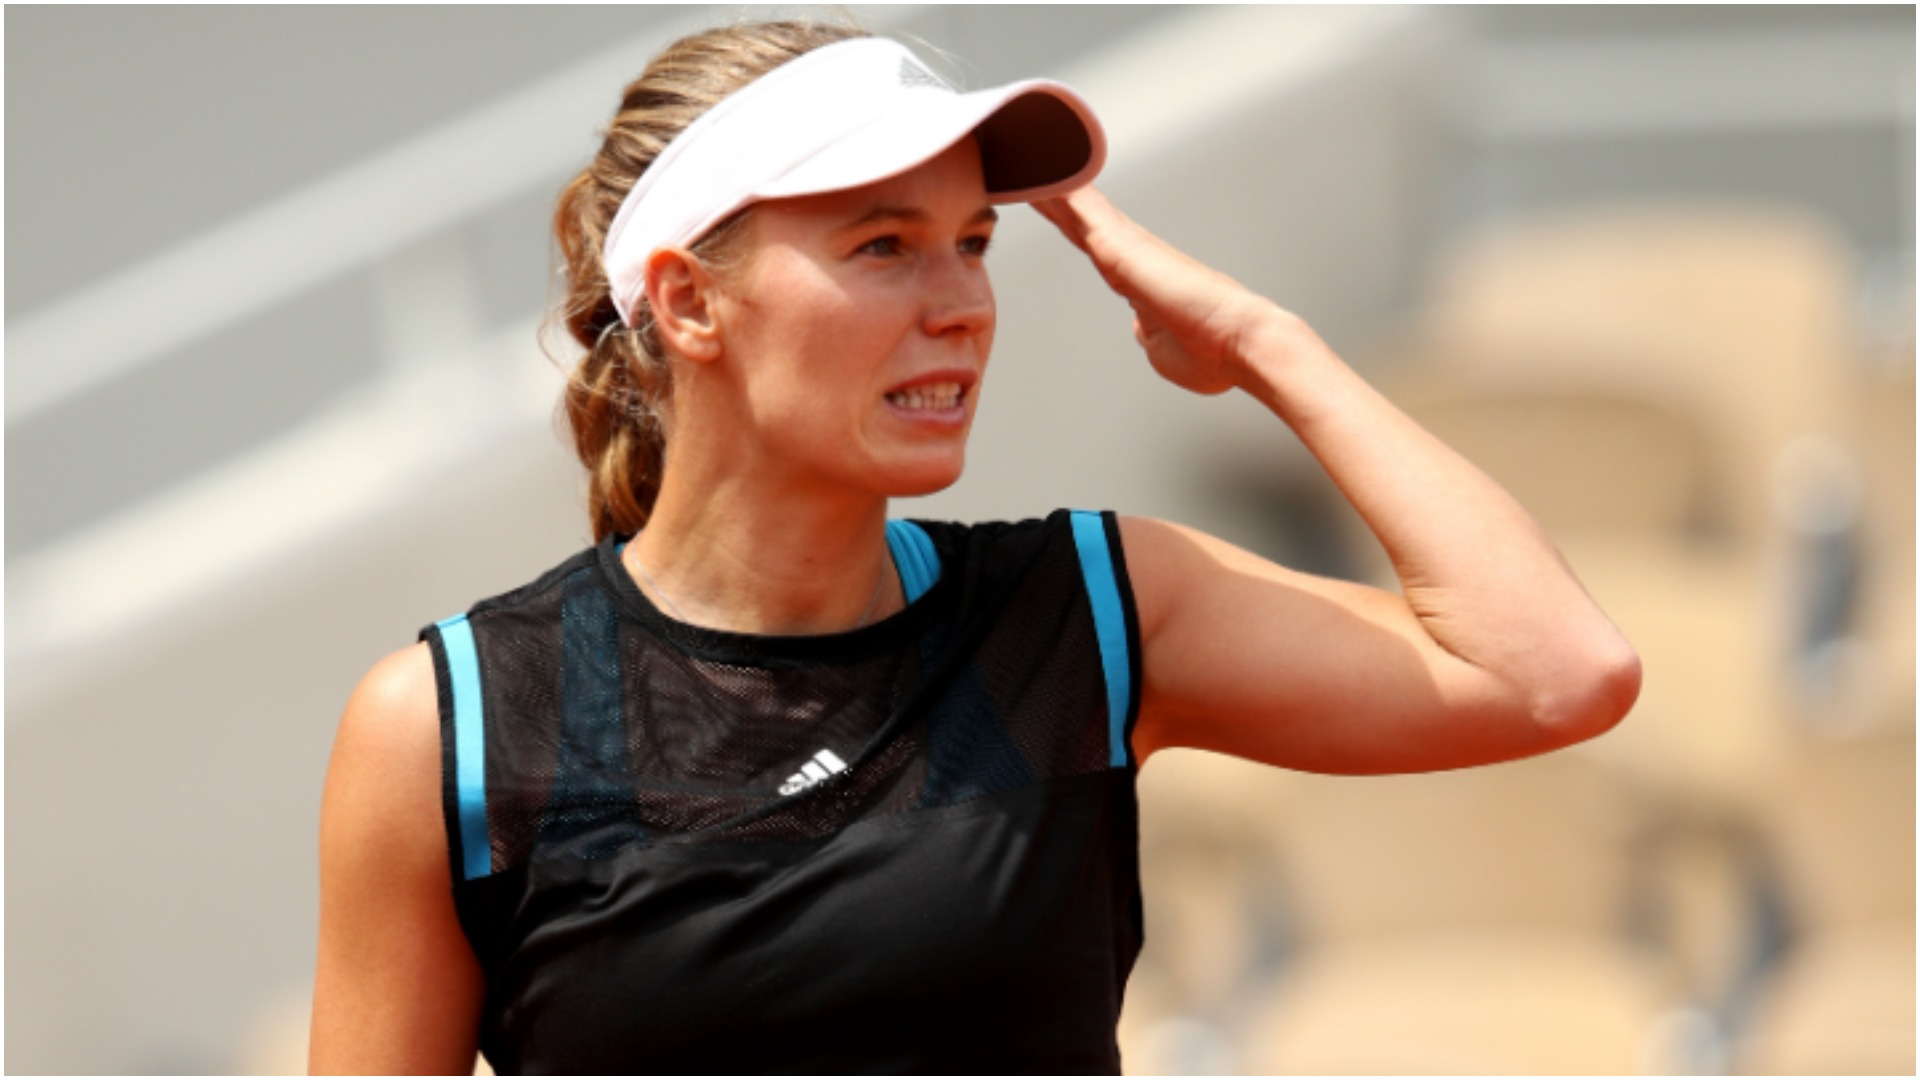 French Open 2019: Caroline Wozniacki trying to stay positive after shocking exit